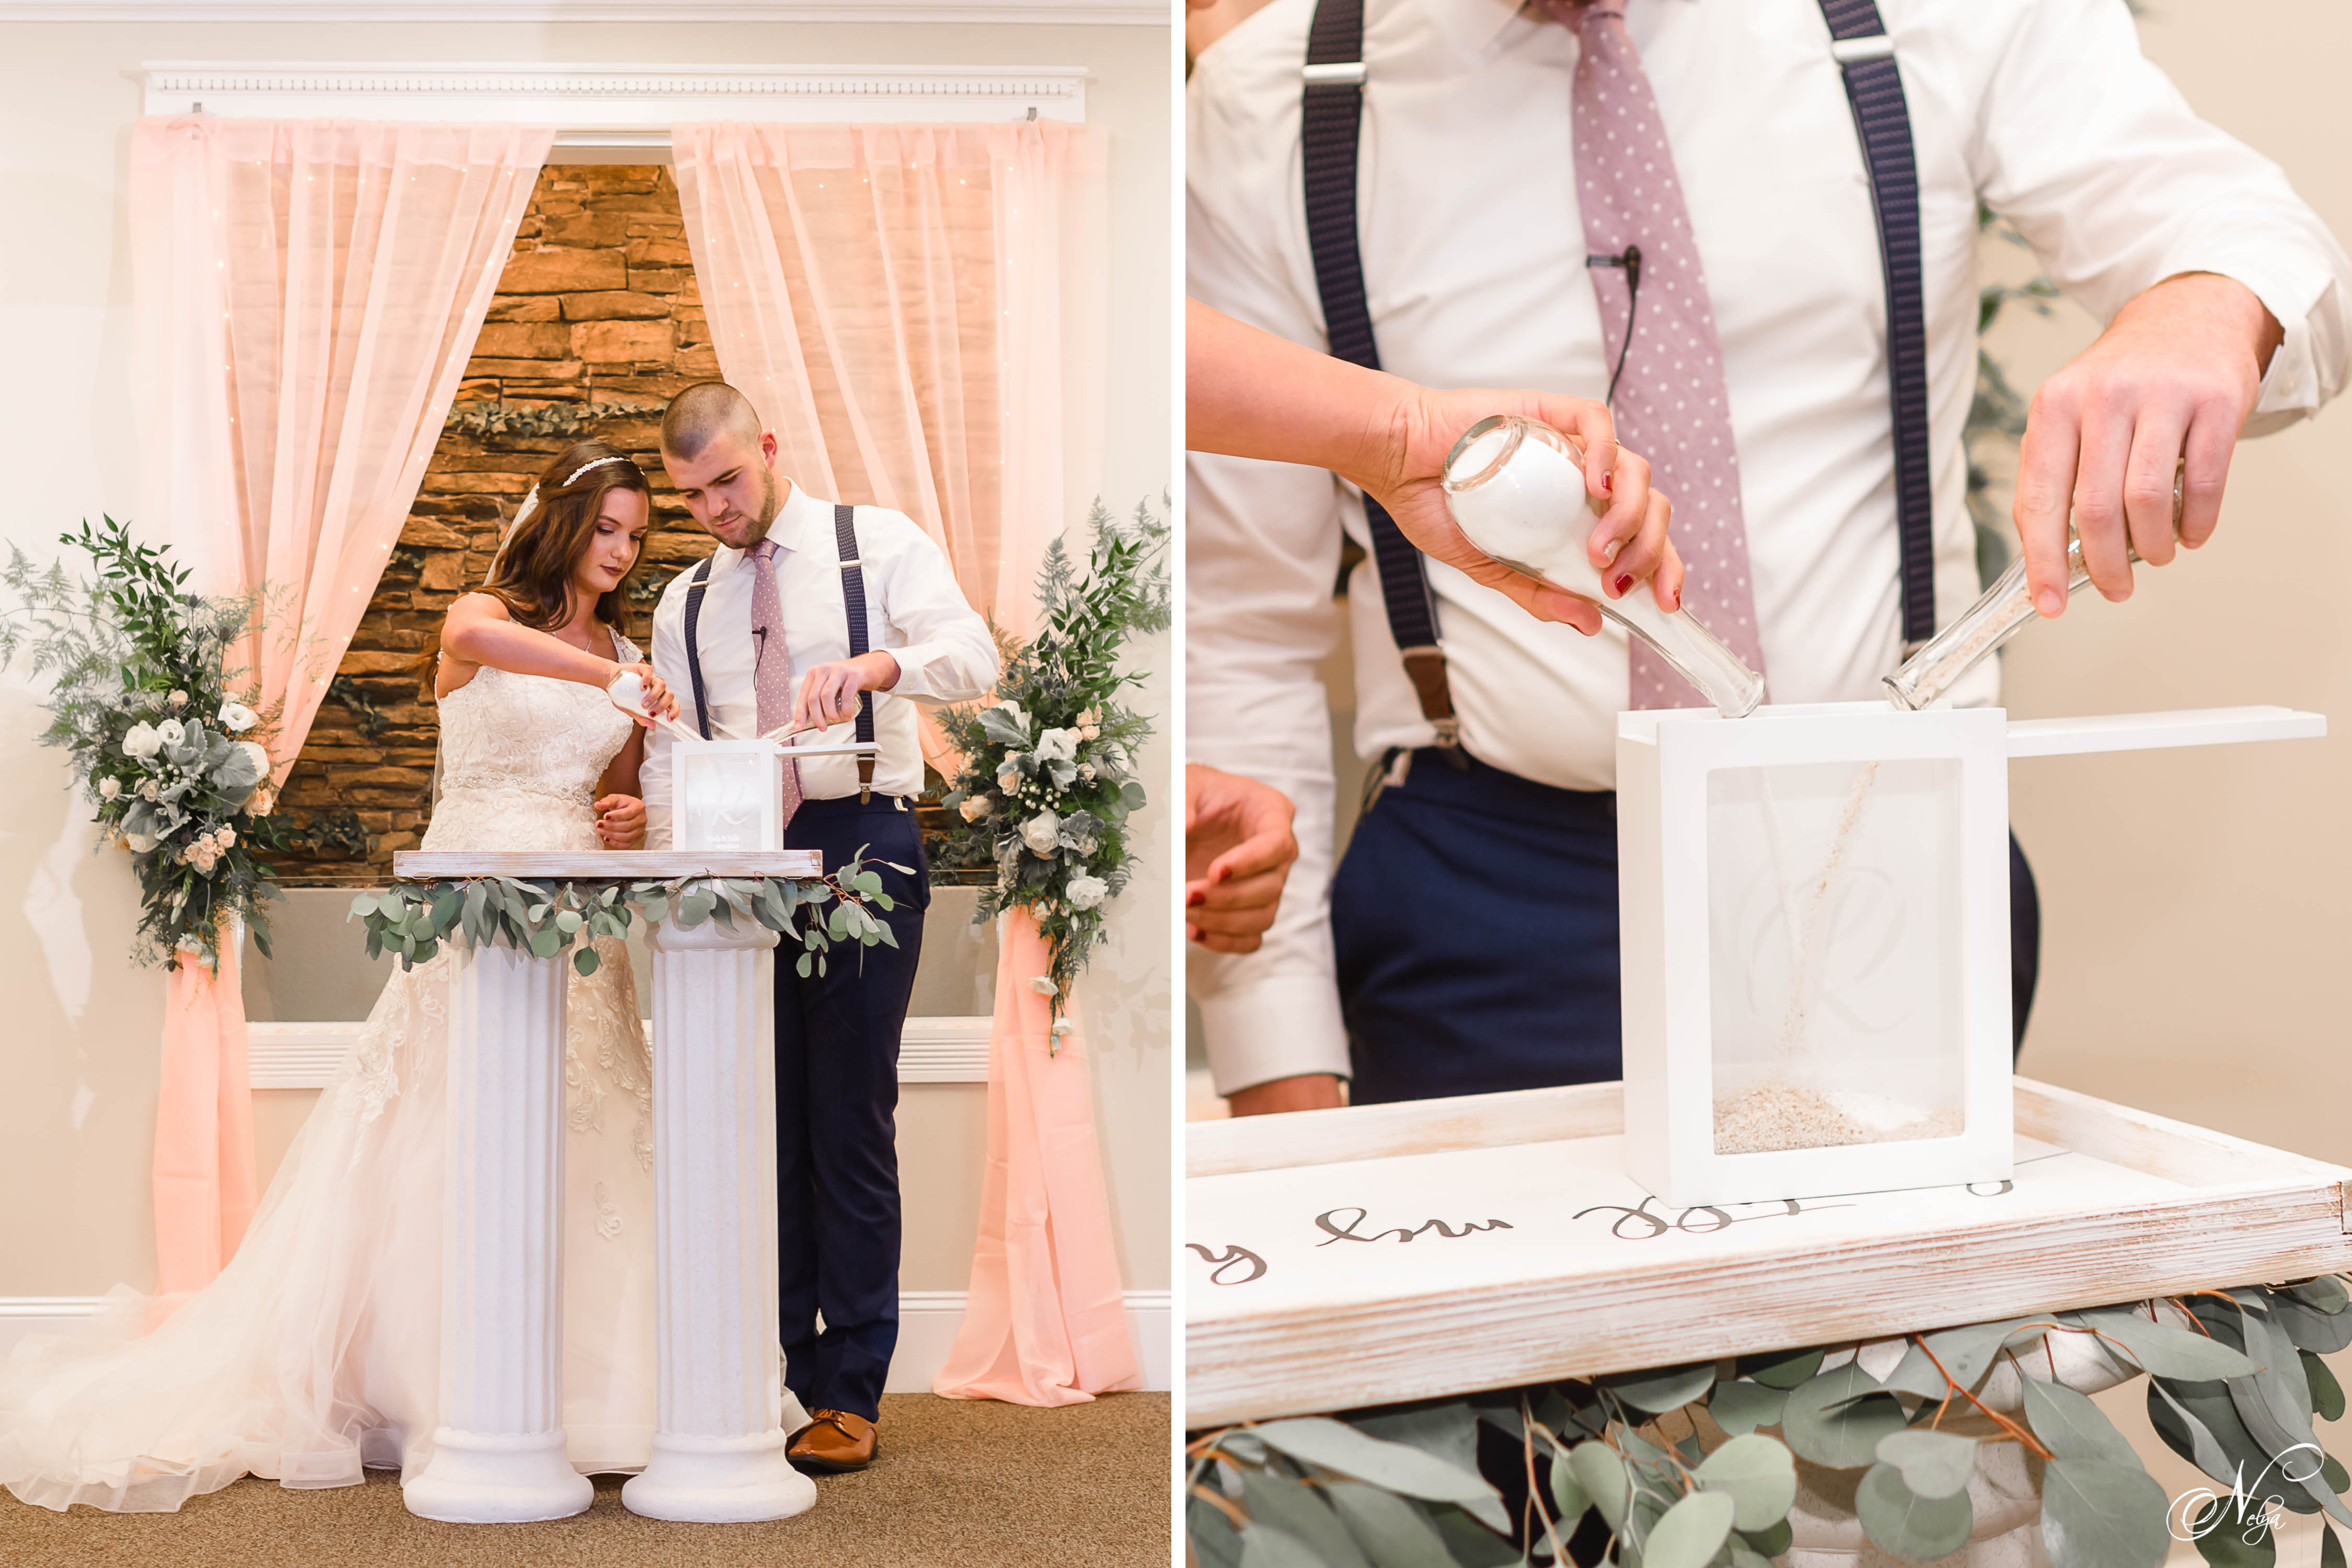 bride and groom pouring gray and white colored sand into cute glass frame with their last name engraved onto the glass.